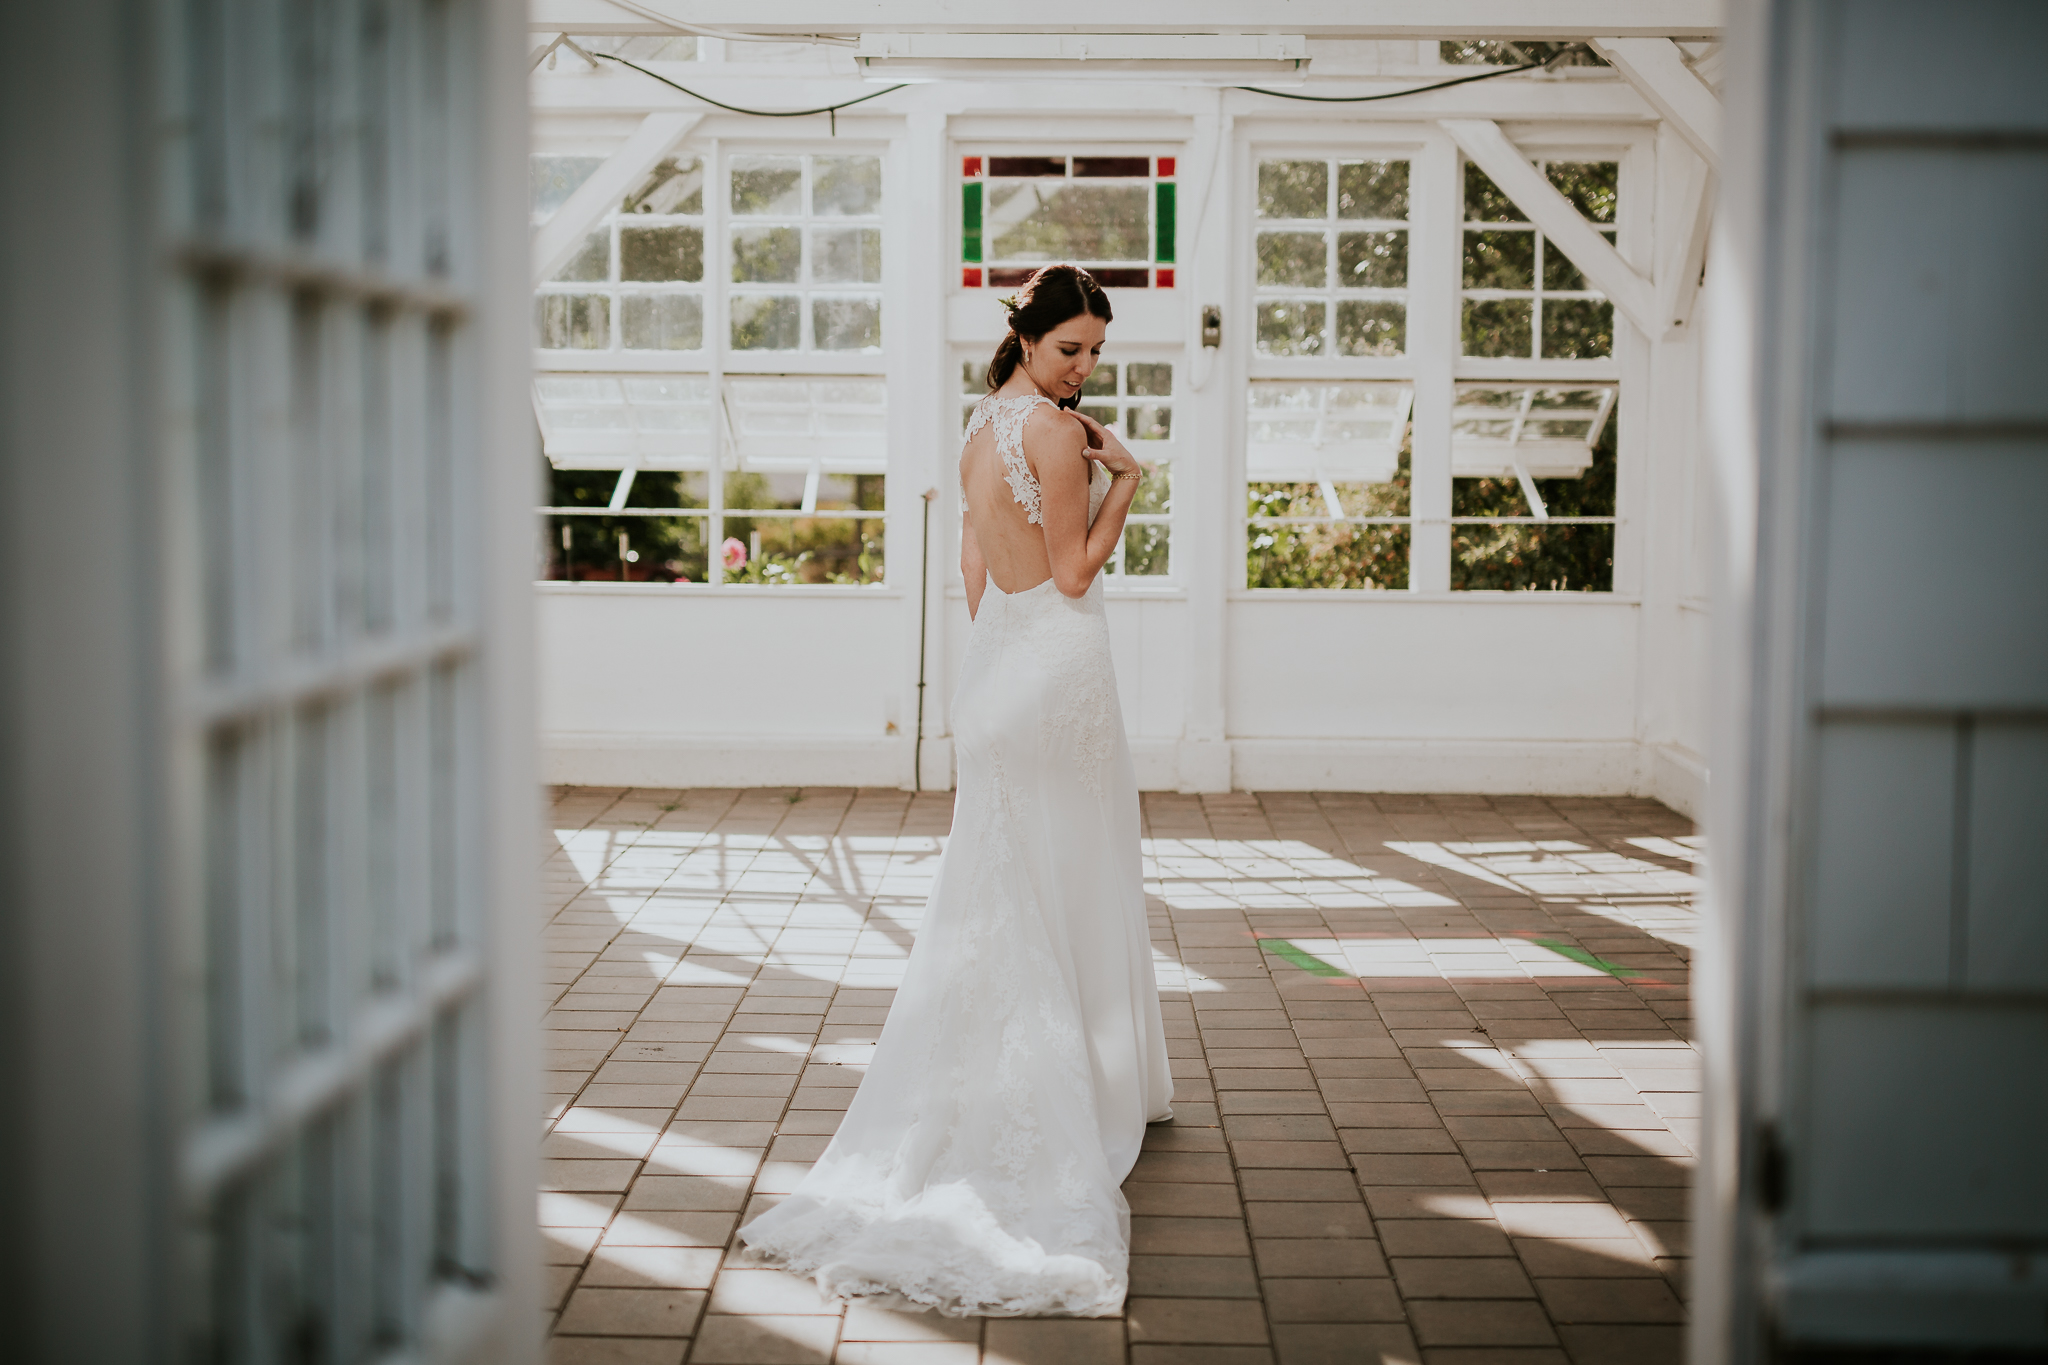 Bride inside greenhouse for wedding photos near Victoria BC Vancouver Island